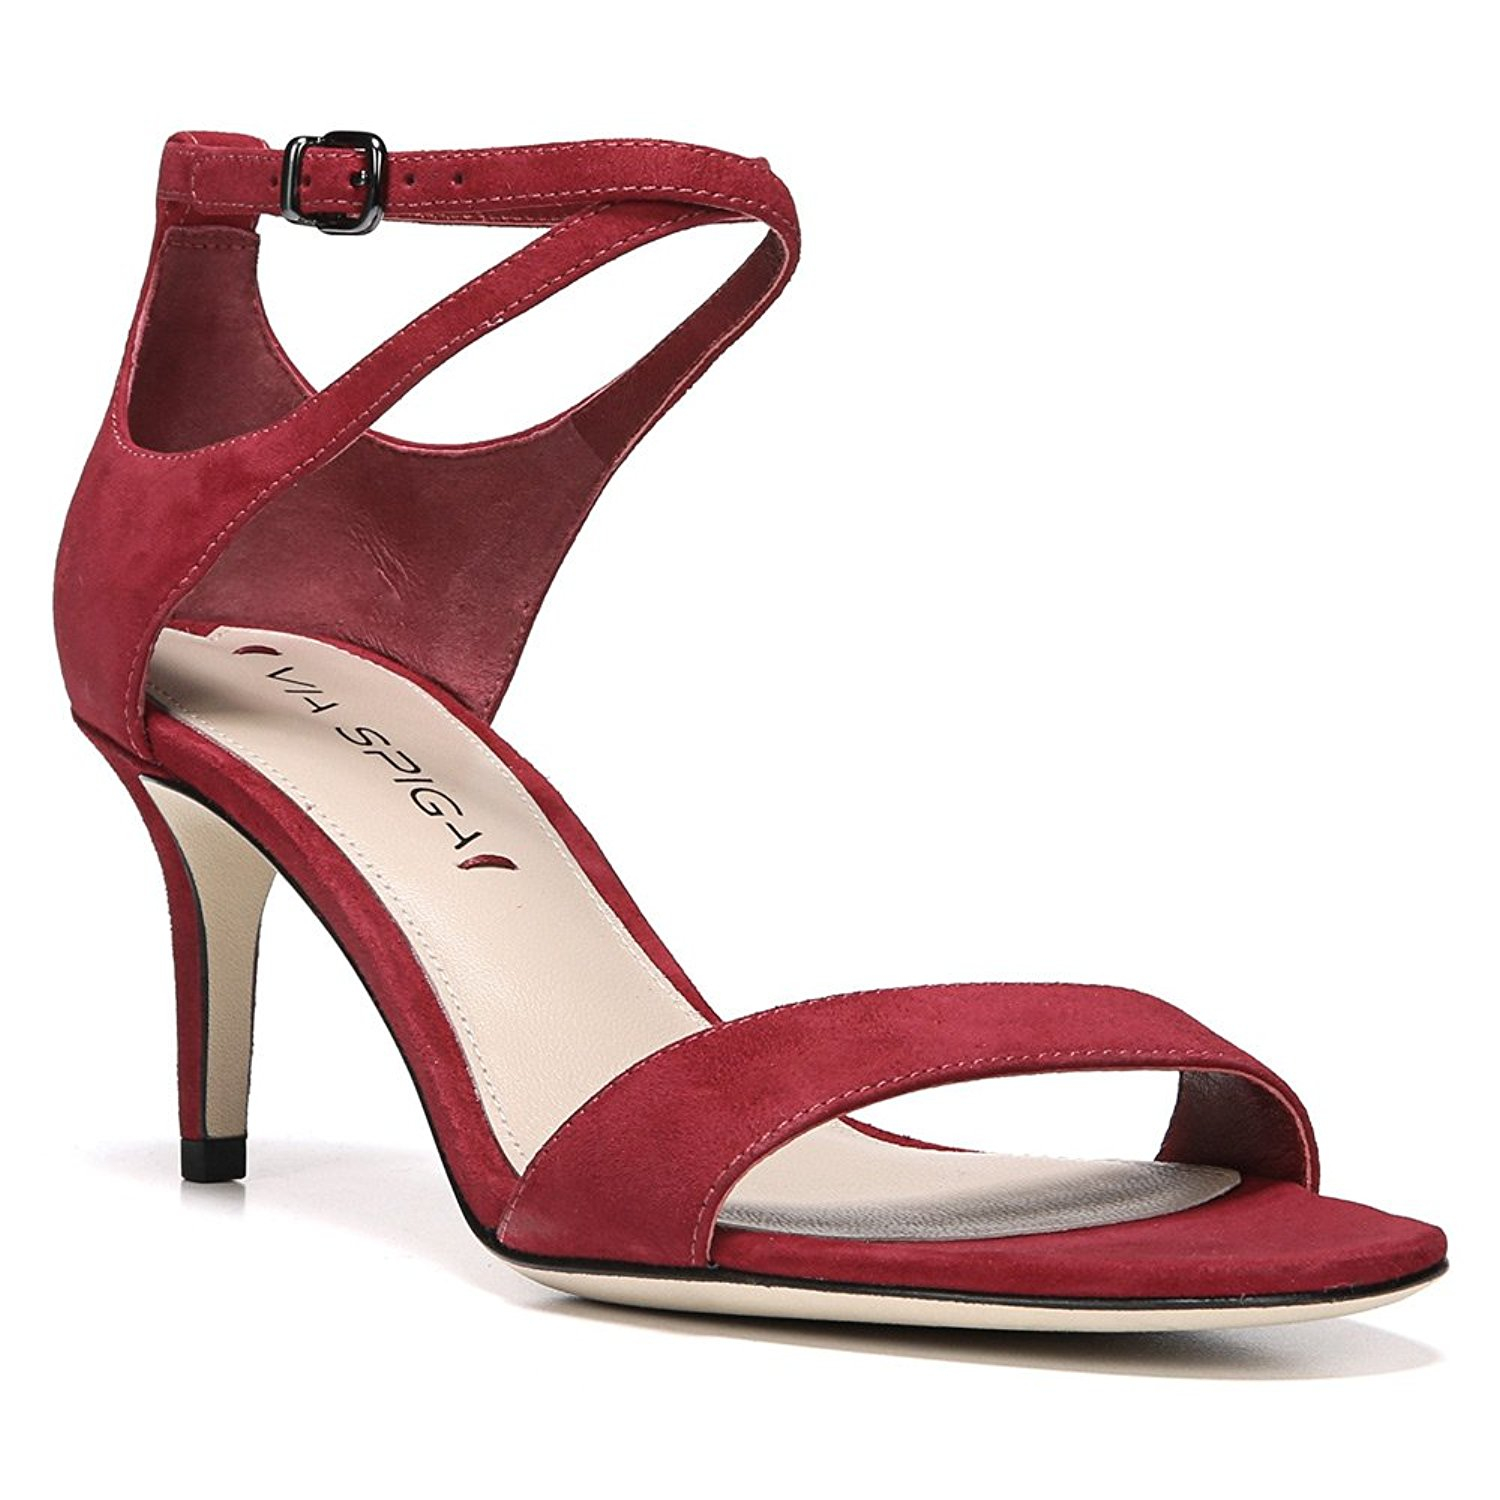 34d496a8348 Details about Via Spiga Womens Leesa Open Toe Casual Slingback Sandals